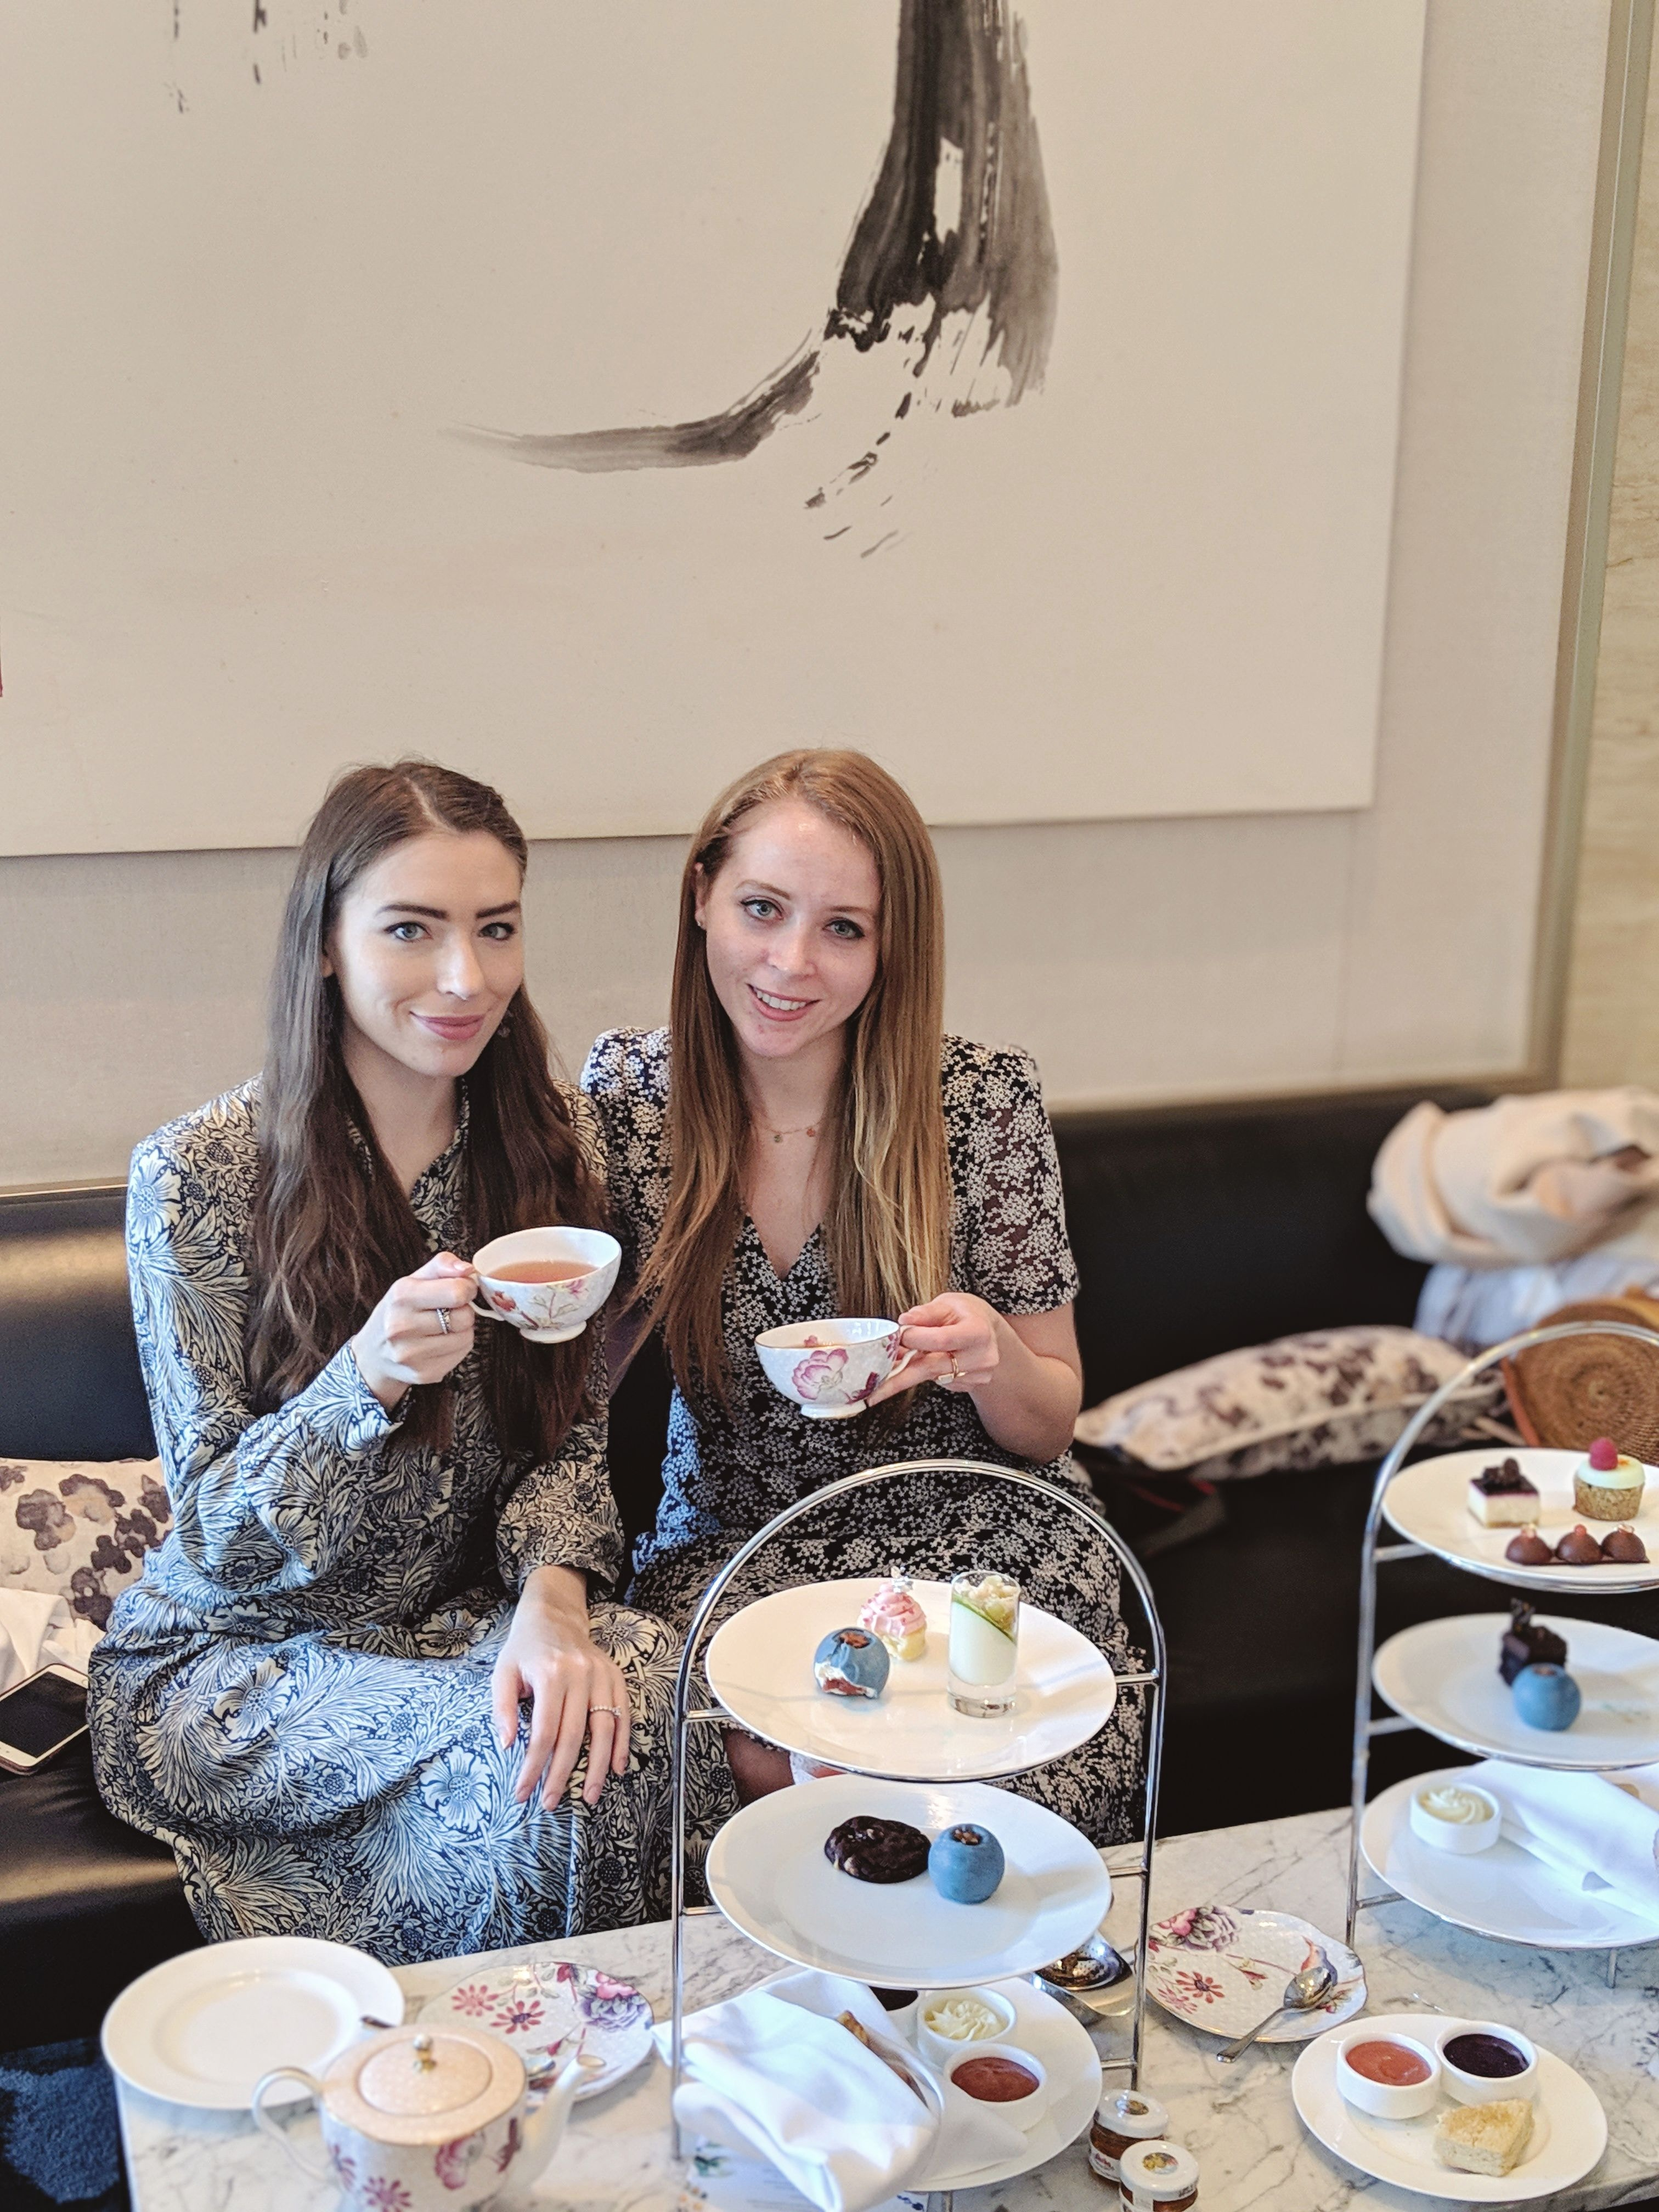 The perfect girls' weekend: high tea at the Shangri-La Hotel in Toronto.